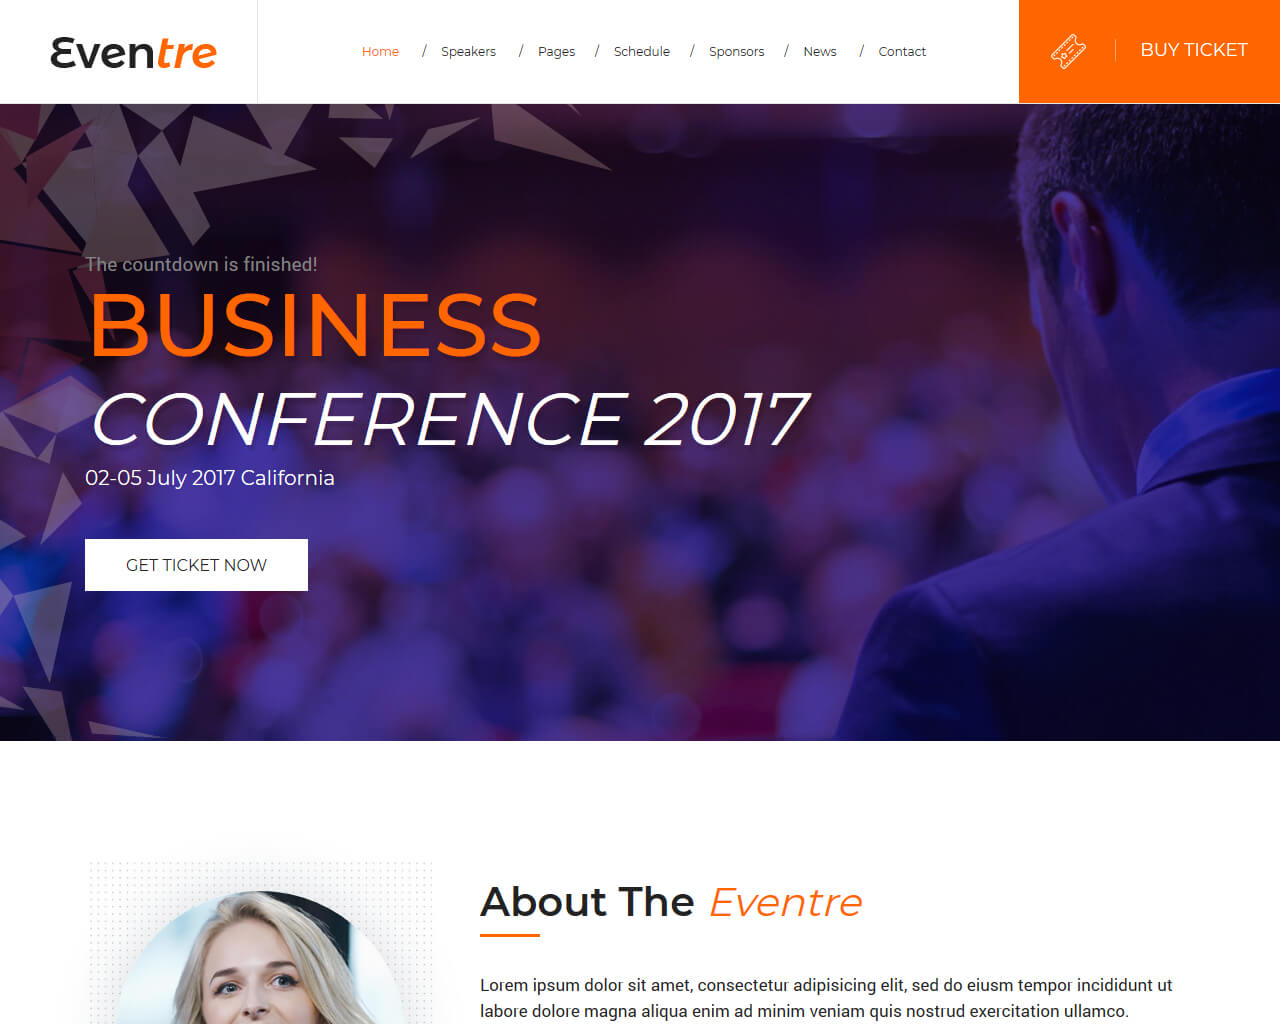 Eventre Website Template